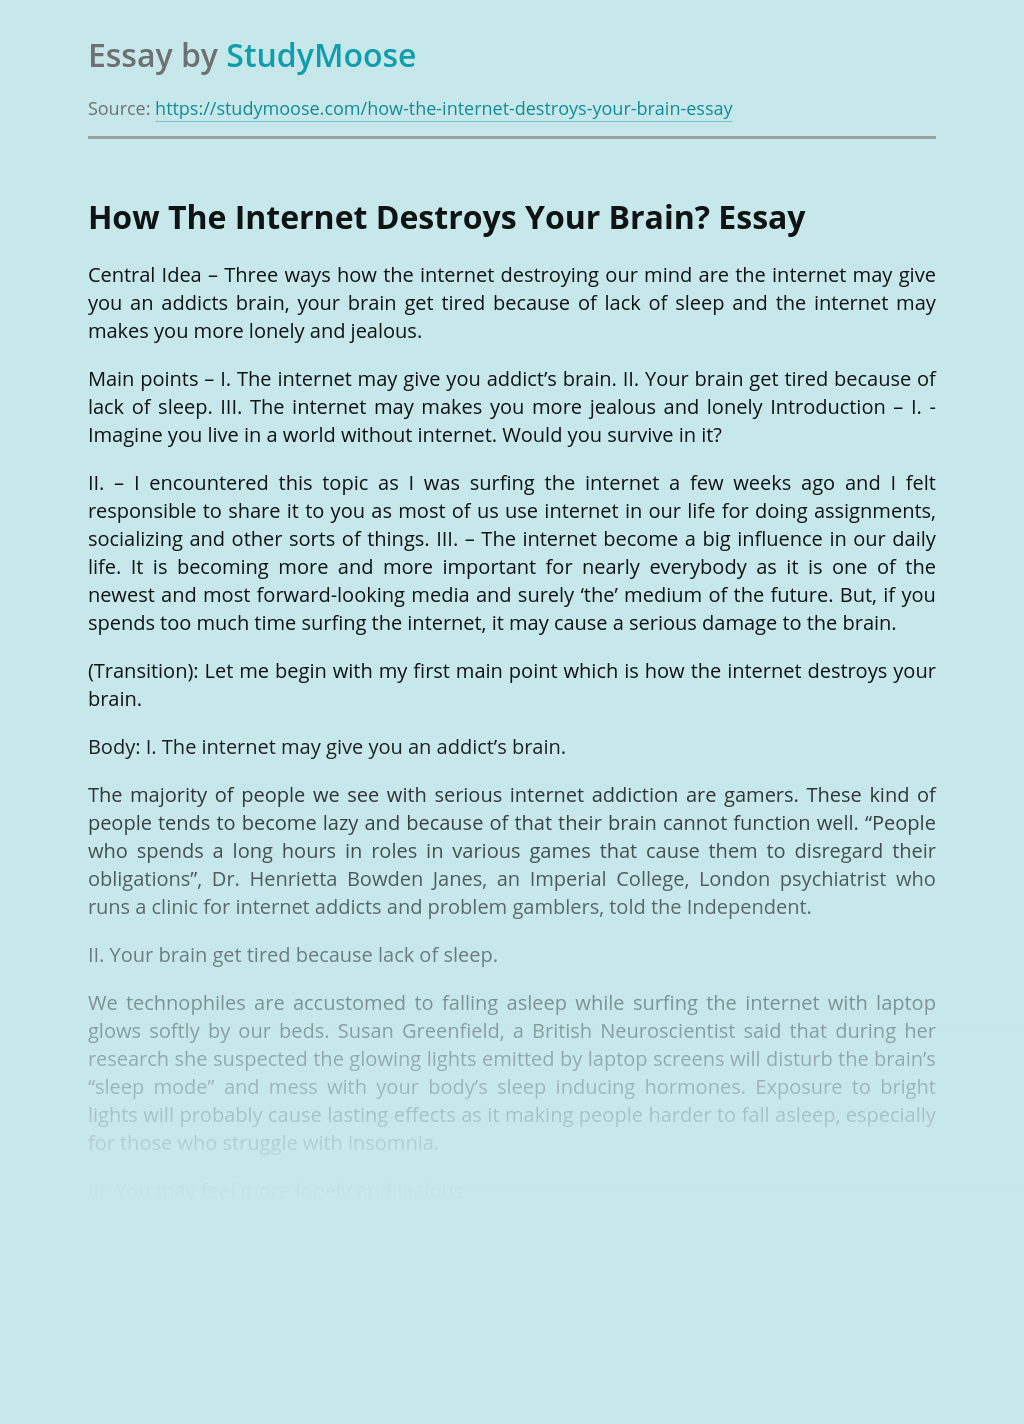 How The Internet Destroys Your Brain?